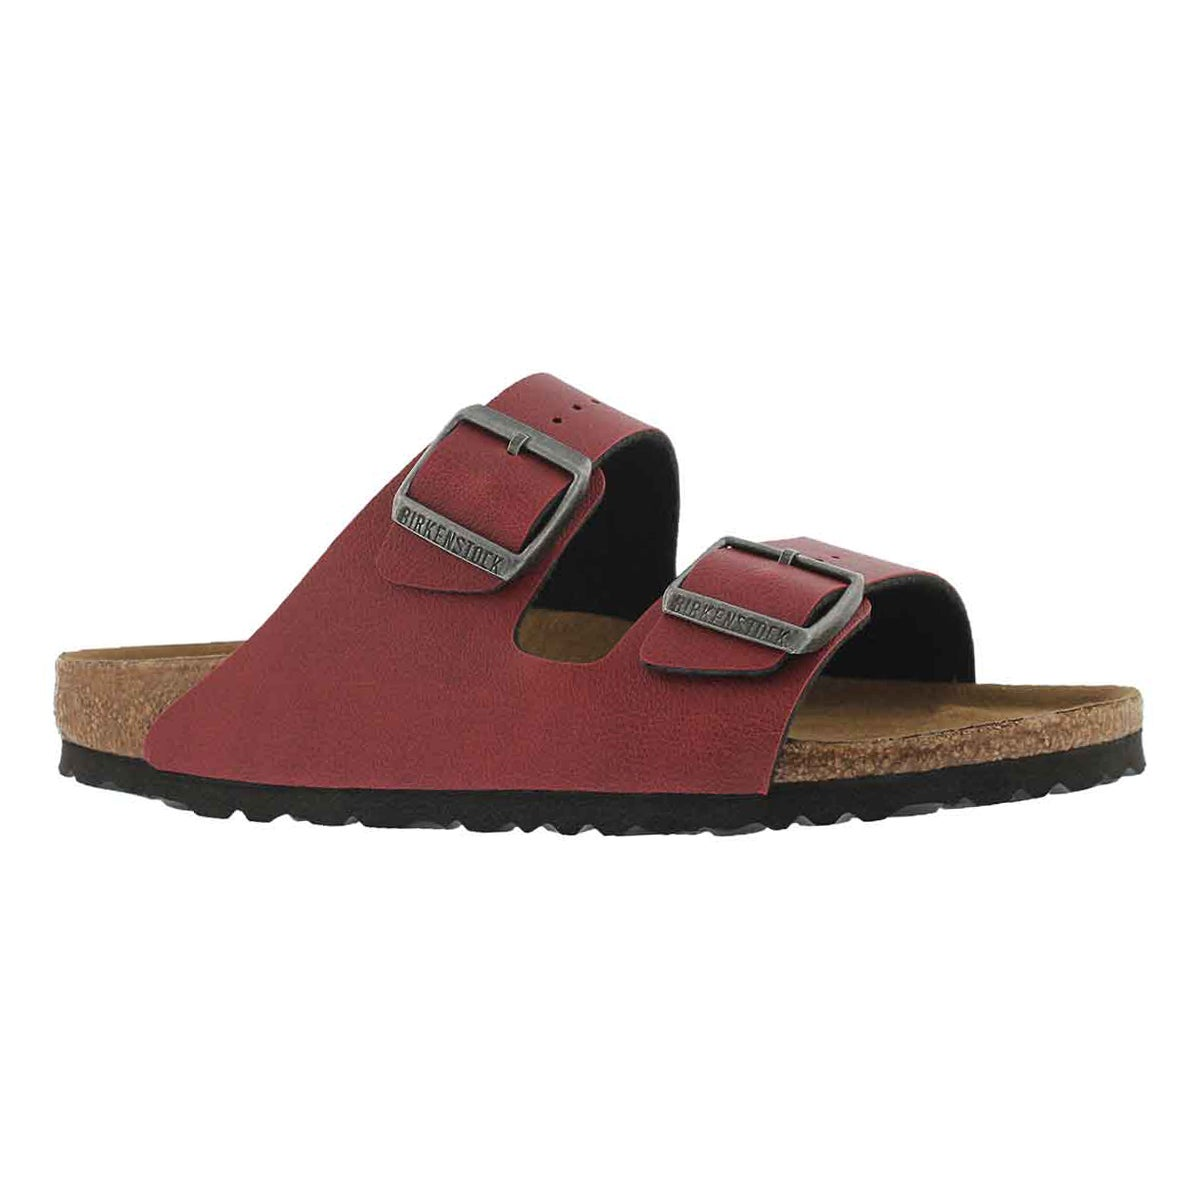 Women's ARIZONA VEG BF  bordeaux sandals - Narrow